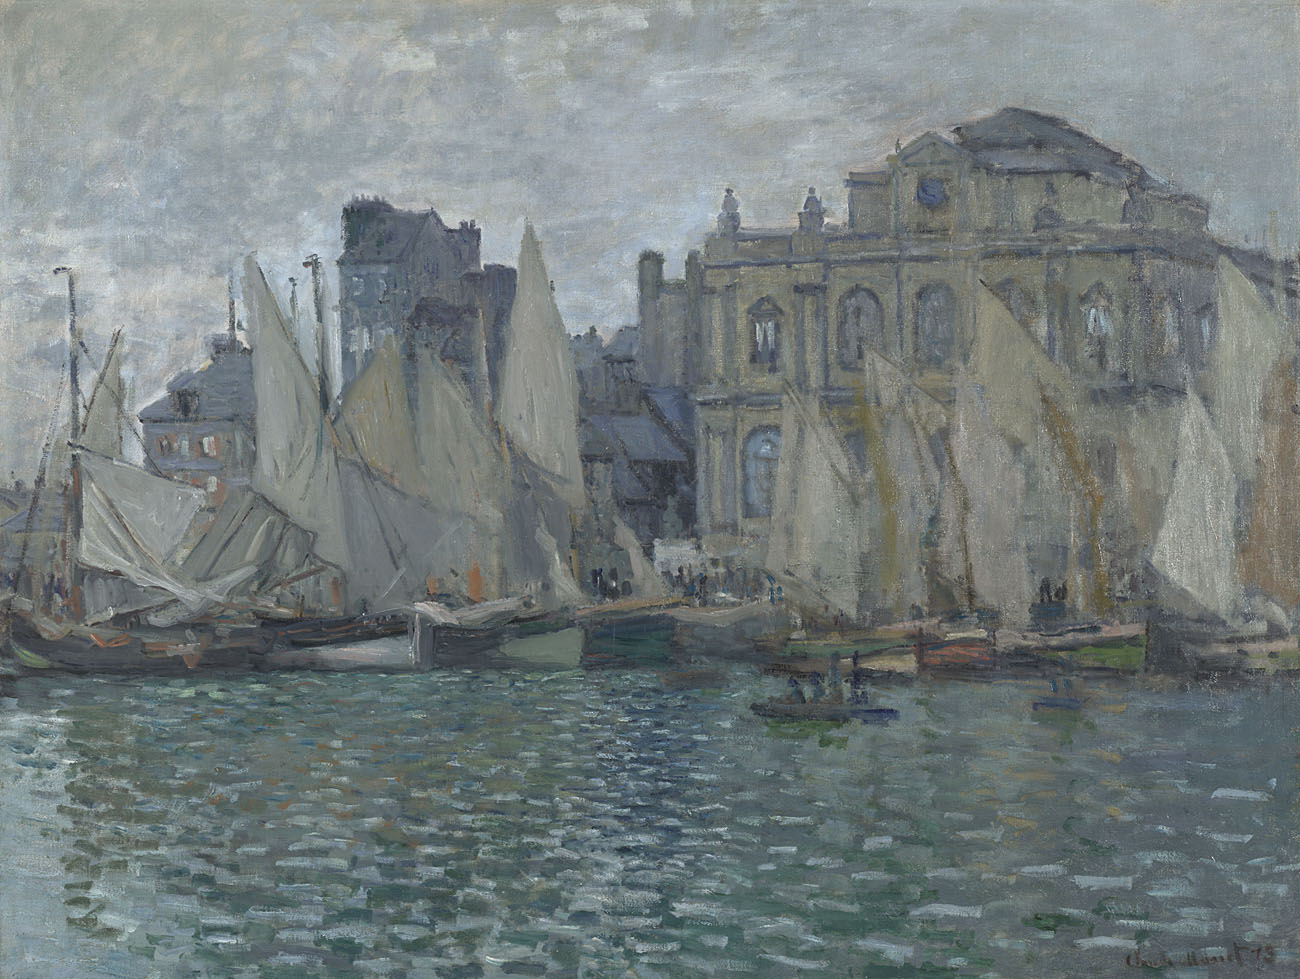 claude monet,  the museum at le havre , 1873. Bequeathed by Helena and Kenneth Levy, 1990© The National gallery